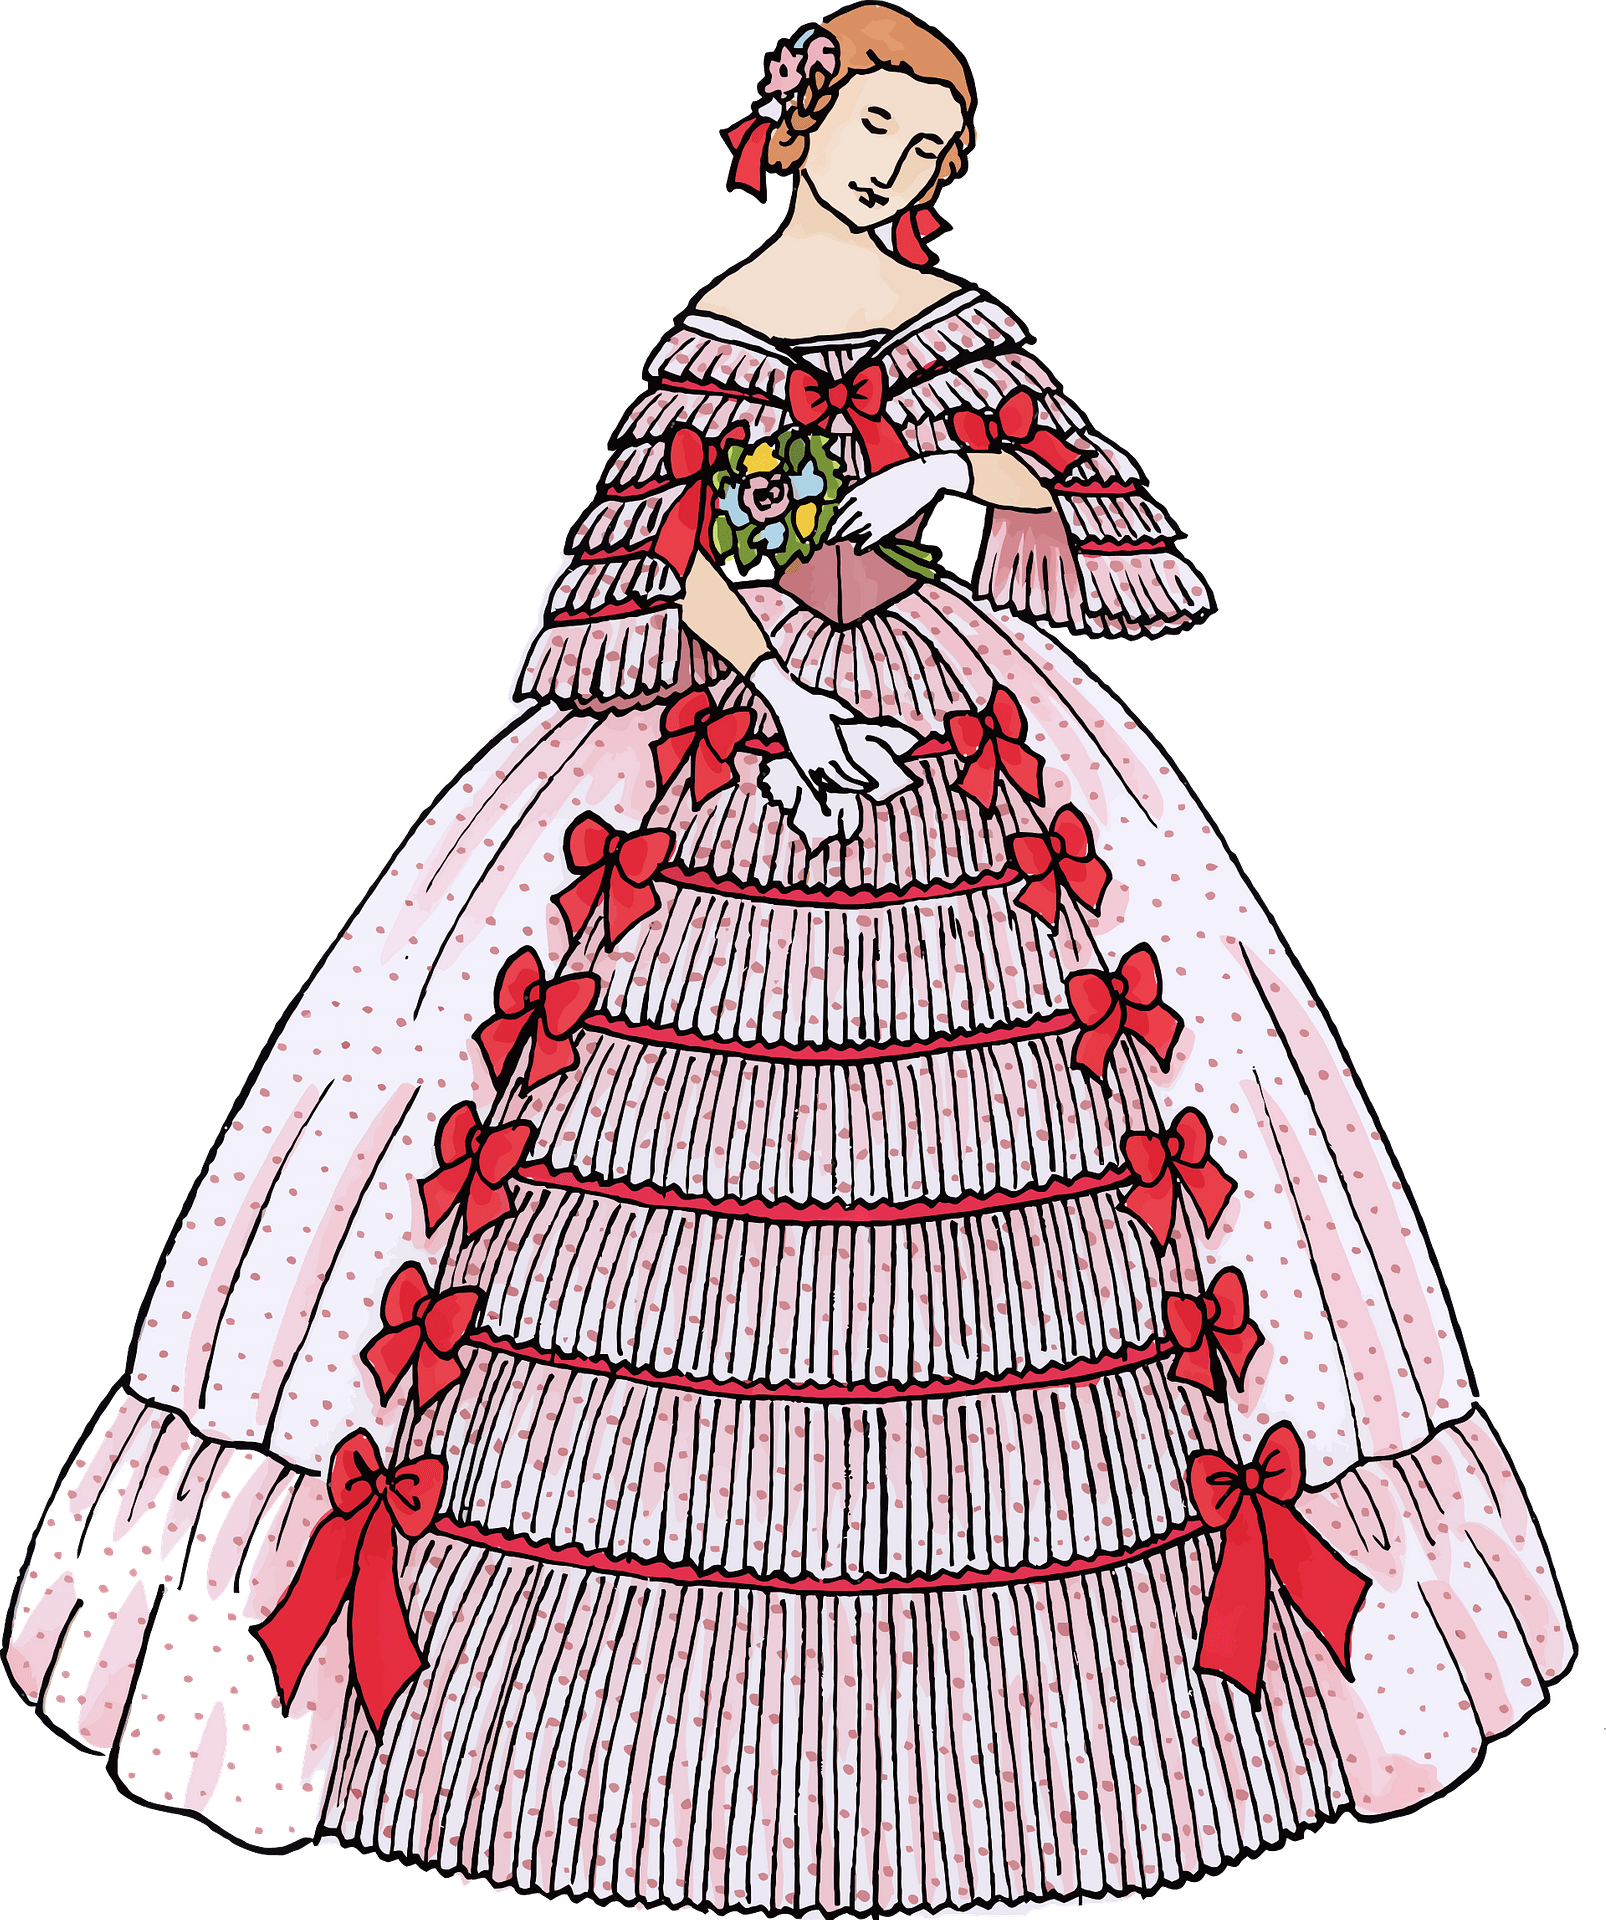 Vintage Woman S Ball Gown Clipart Free Download Transparent Png Creazilla